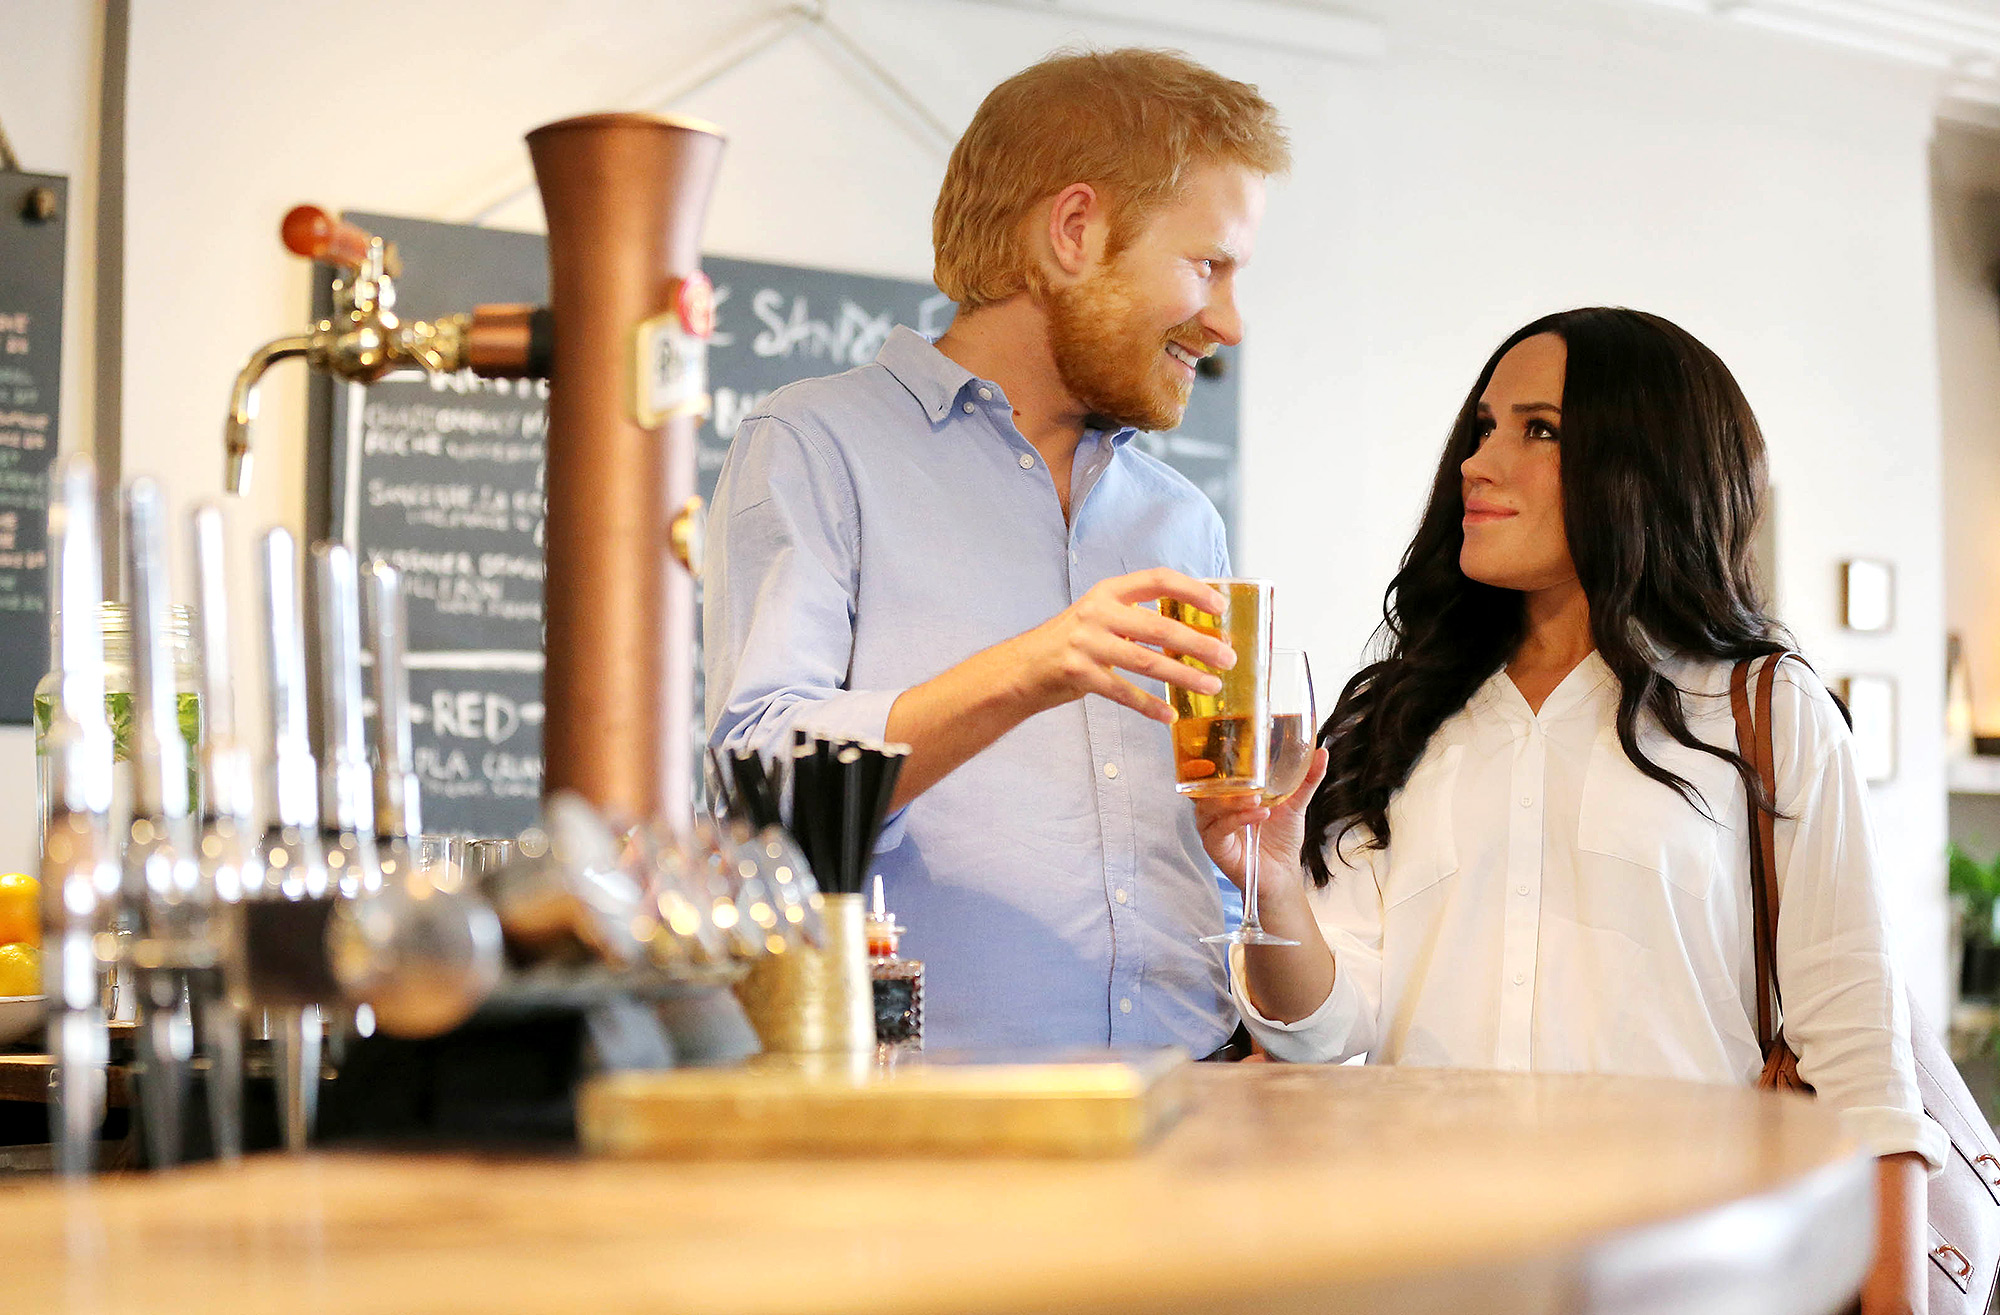 Madame Tussauds Live Figures of the Duke and Duchess of Sussex Spend the day Together